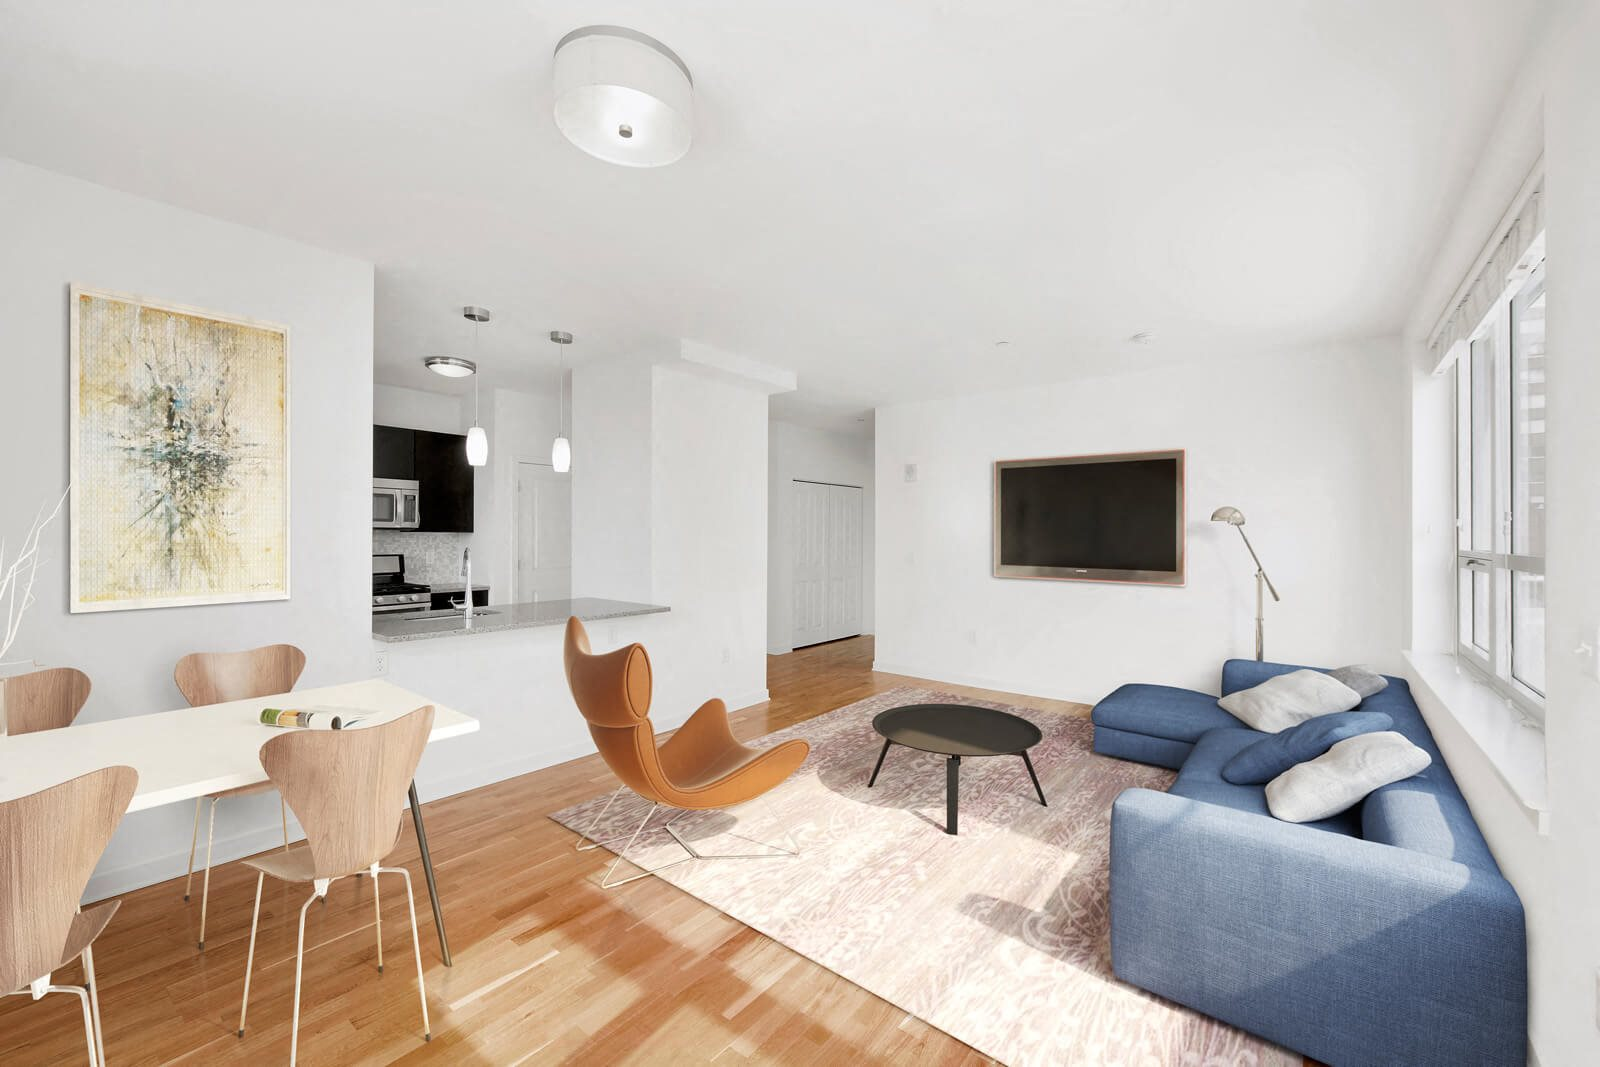 Sleek and Modern Apartment Design at Warren at York by Windsor, Jersey City, NJ